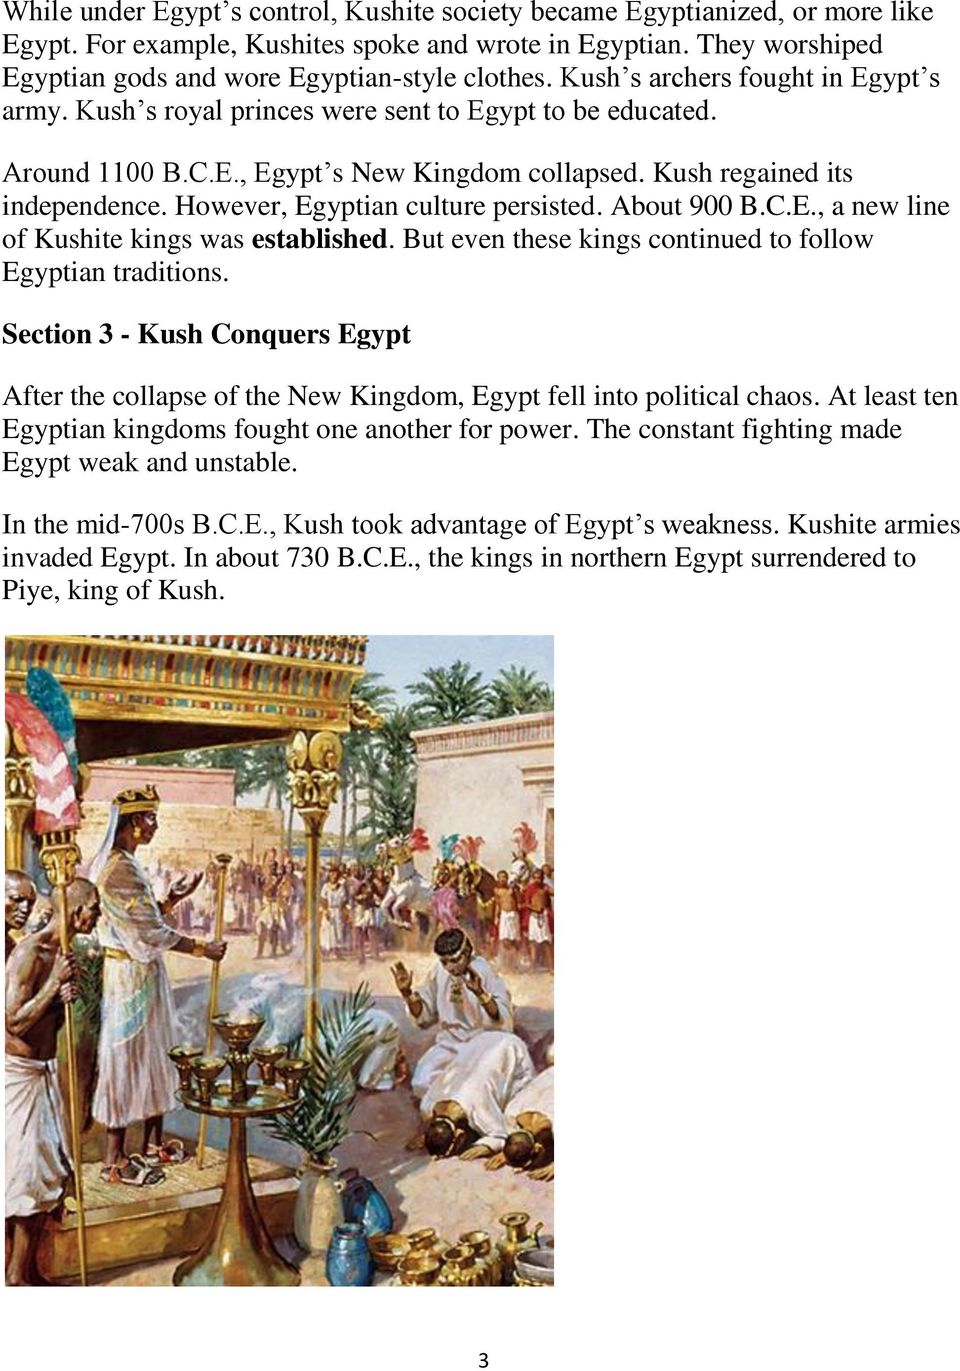 However, Egyptian culture persisted. About 900 B.C.E., a new line of Kushite kings was established. But even these kings continued to follow Egyptian traditions.